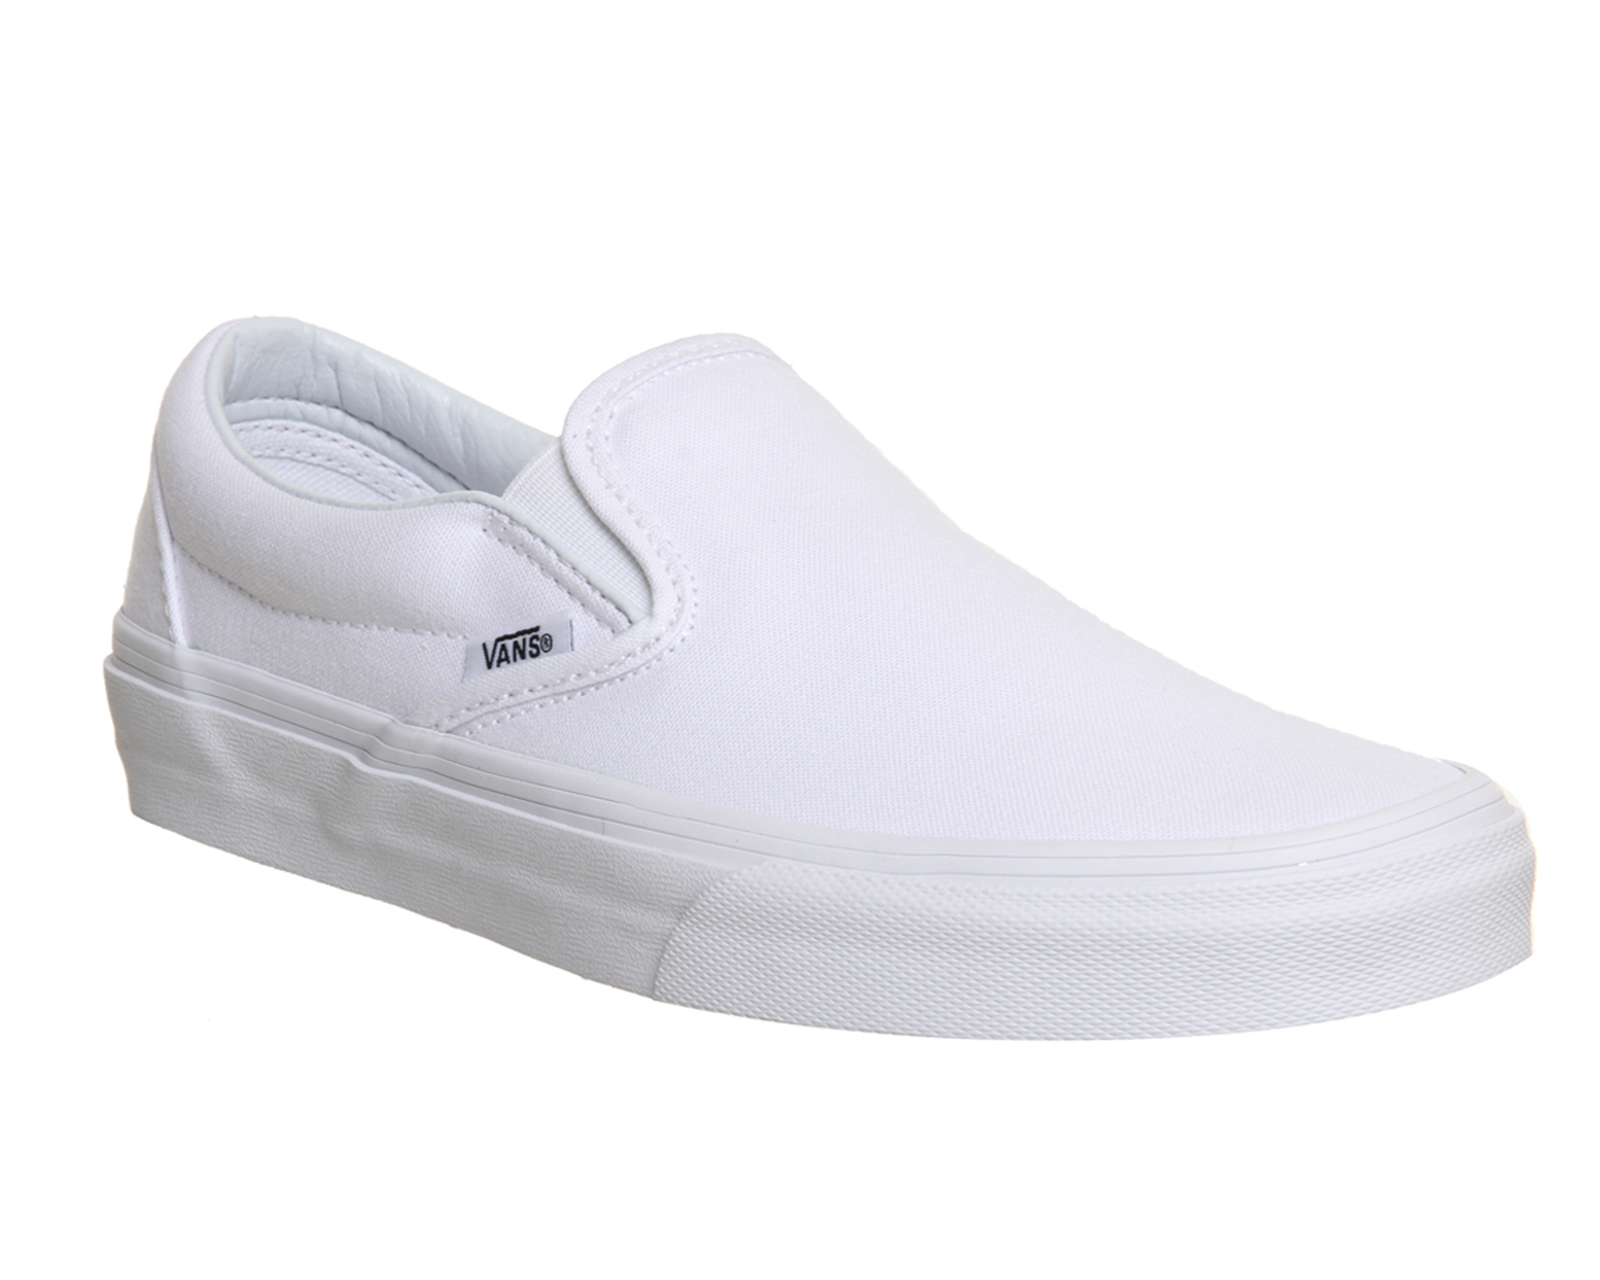 5d42af05f8 Sentinel Mens Vans Classic Slip On Trainers White Mono Trainers Shoes